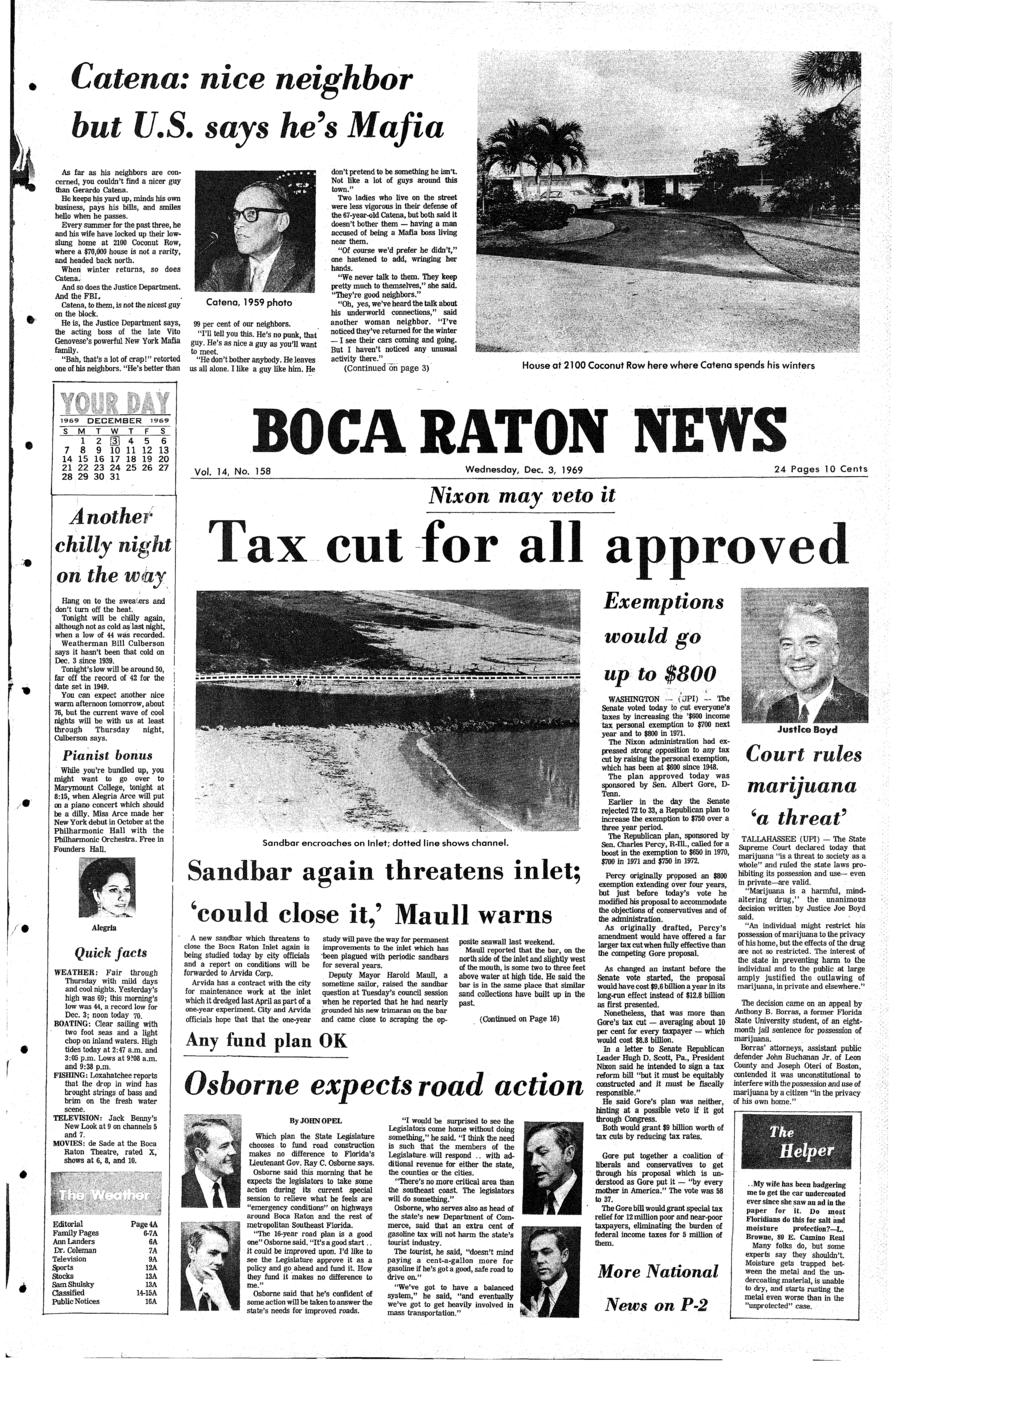 BOCA RATON NEWS Vol  14, No  158 Wednesday, Dec  3, Pages 10 Cents